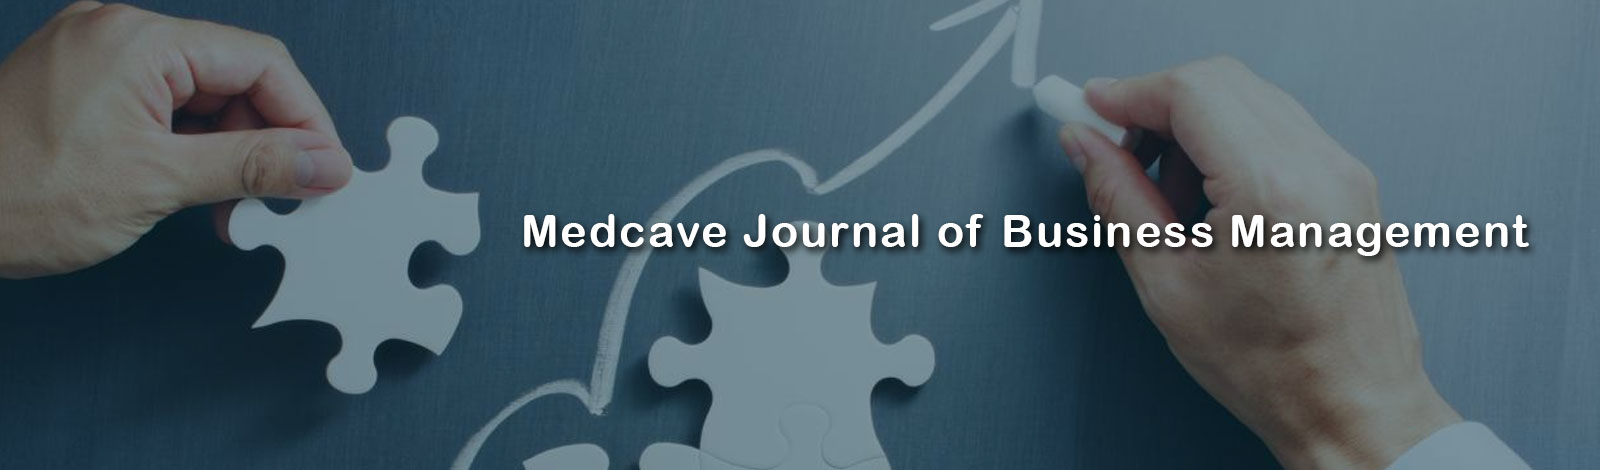 Medcave Journal of Business Management